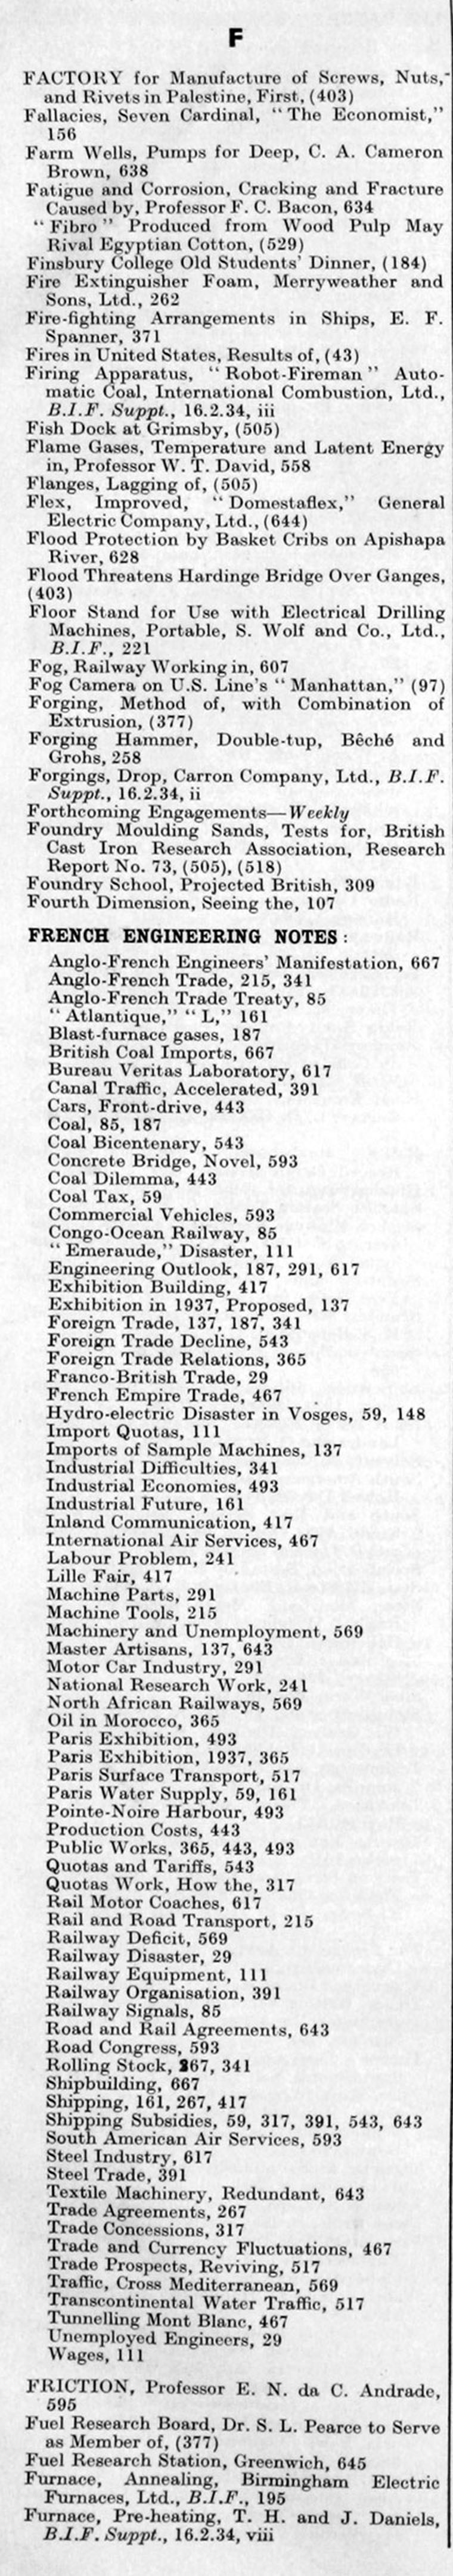 The Engineer 1934 Jan-Jun: Index - Graces Guide